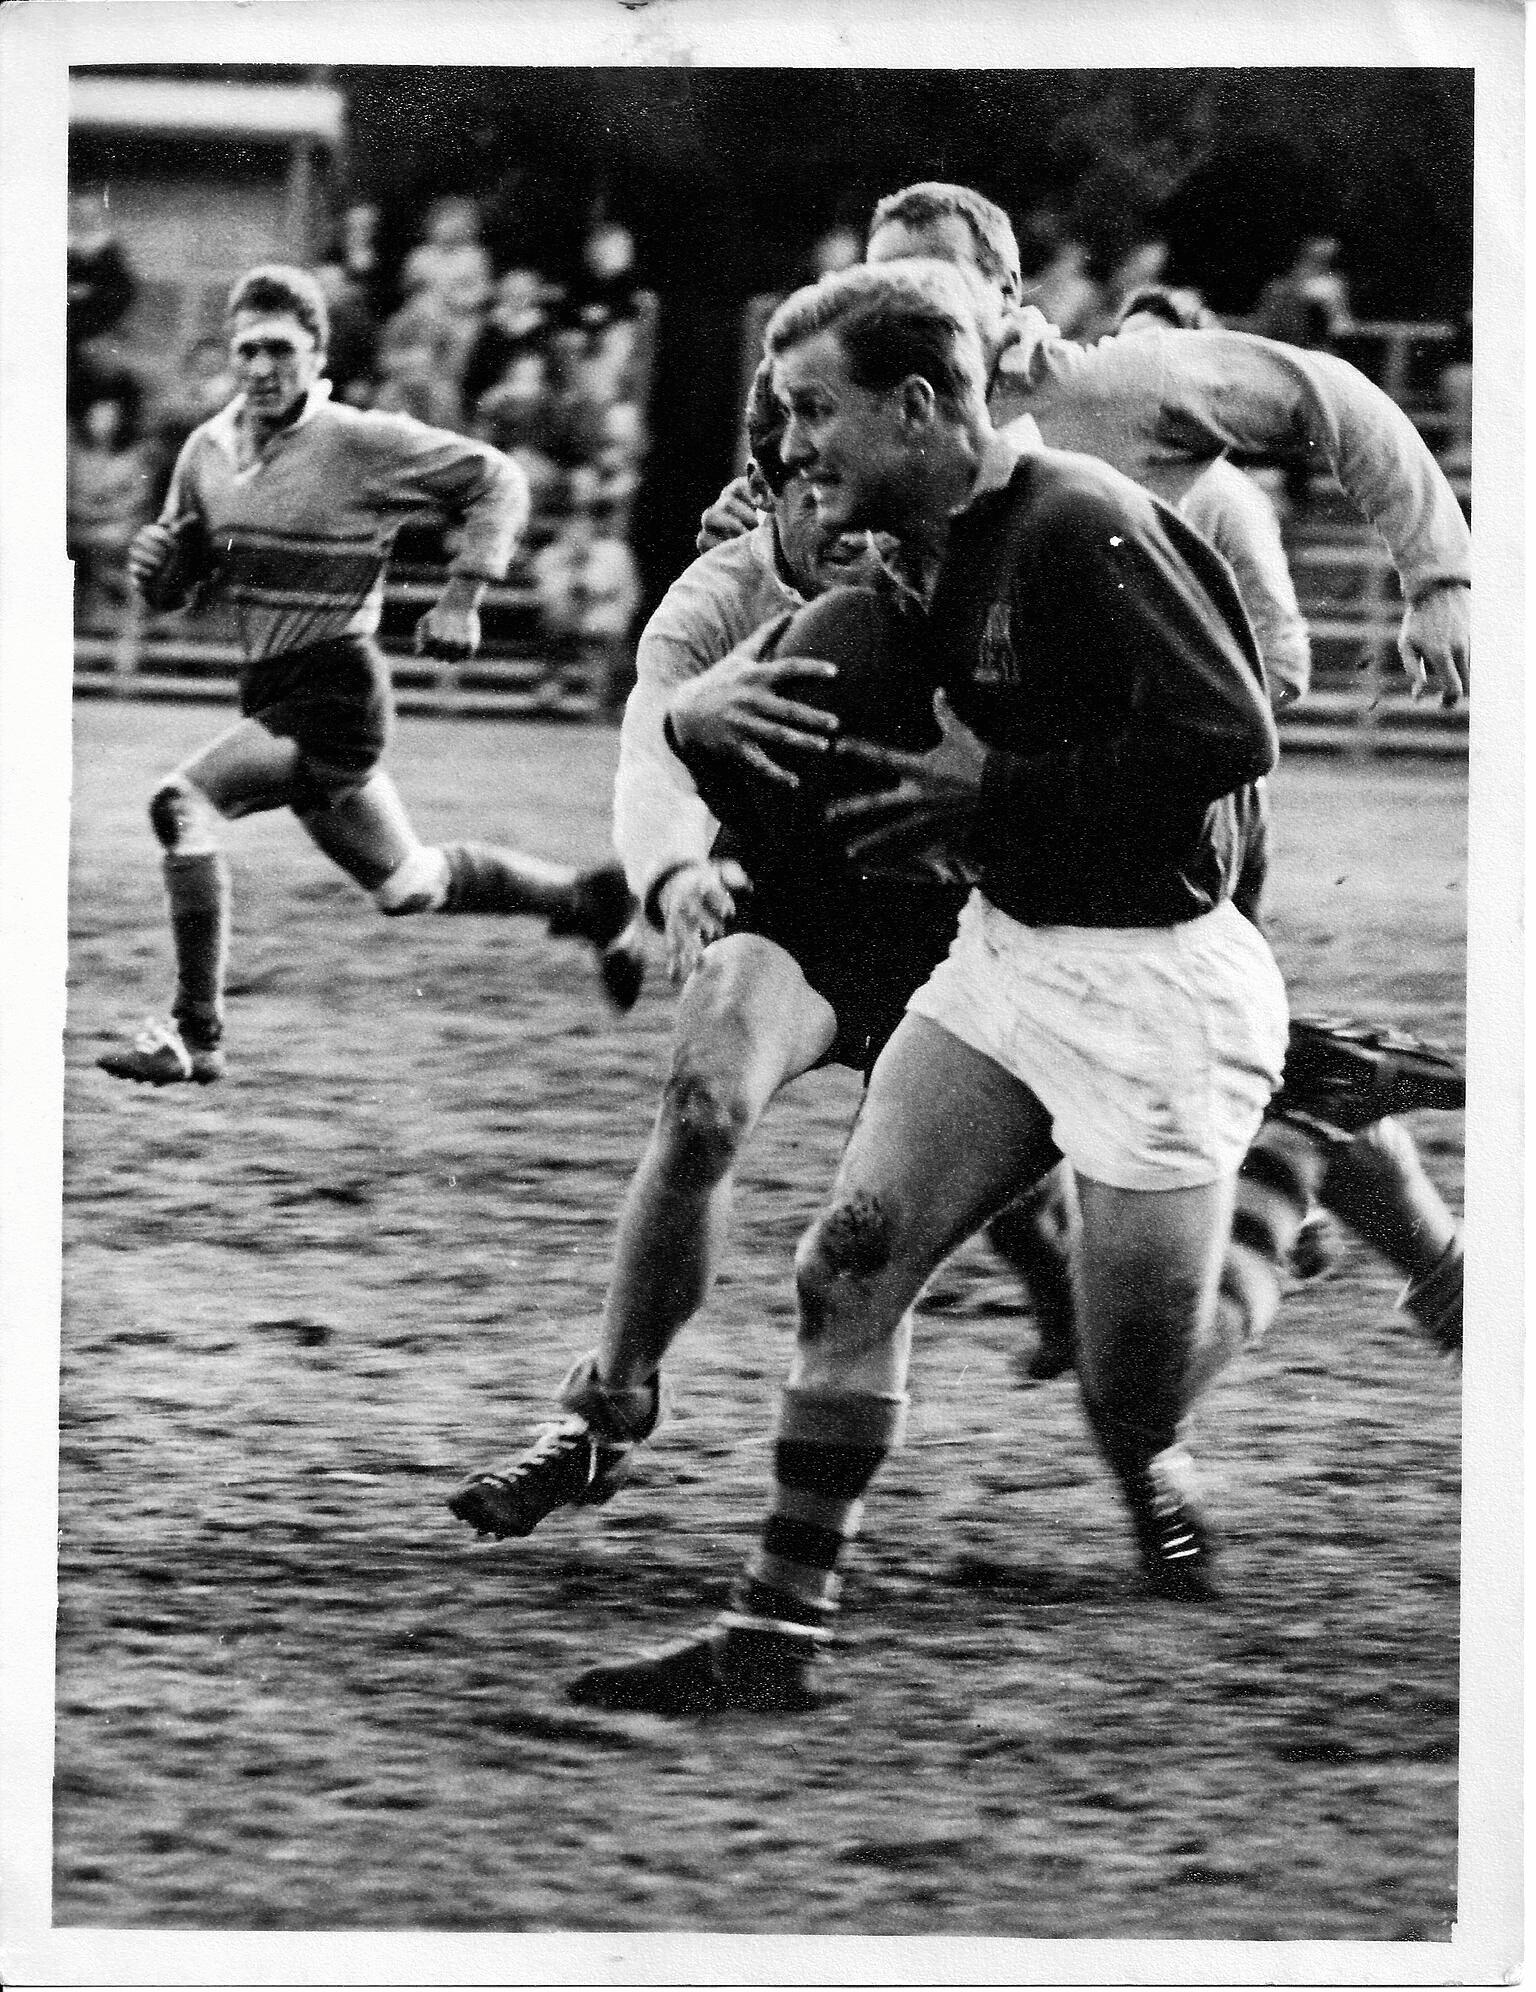 .Russell Stitz playing for Wests rugby c1964